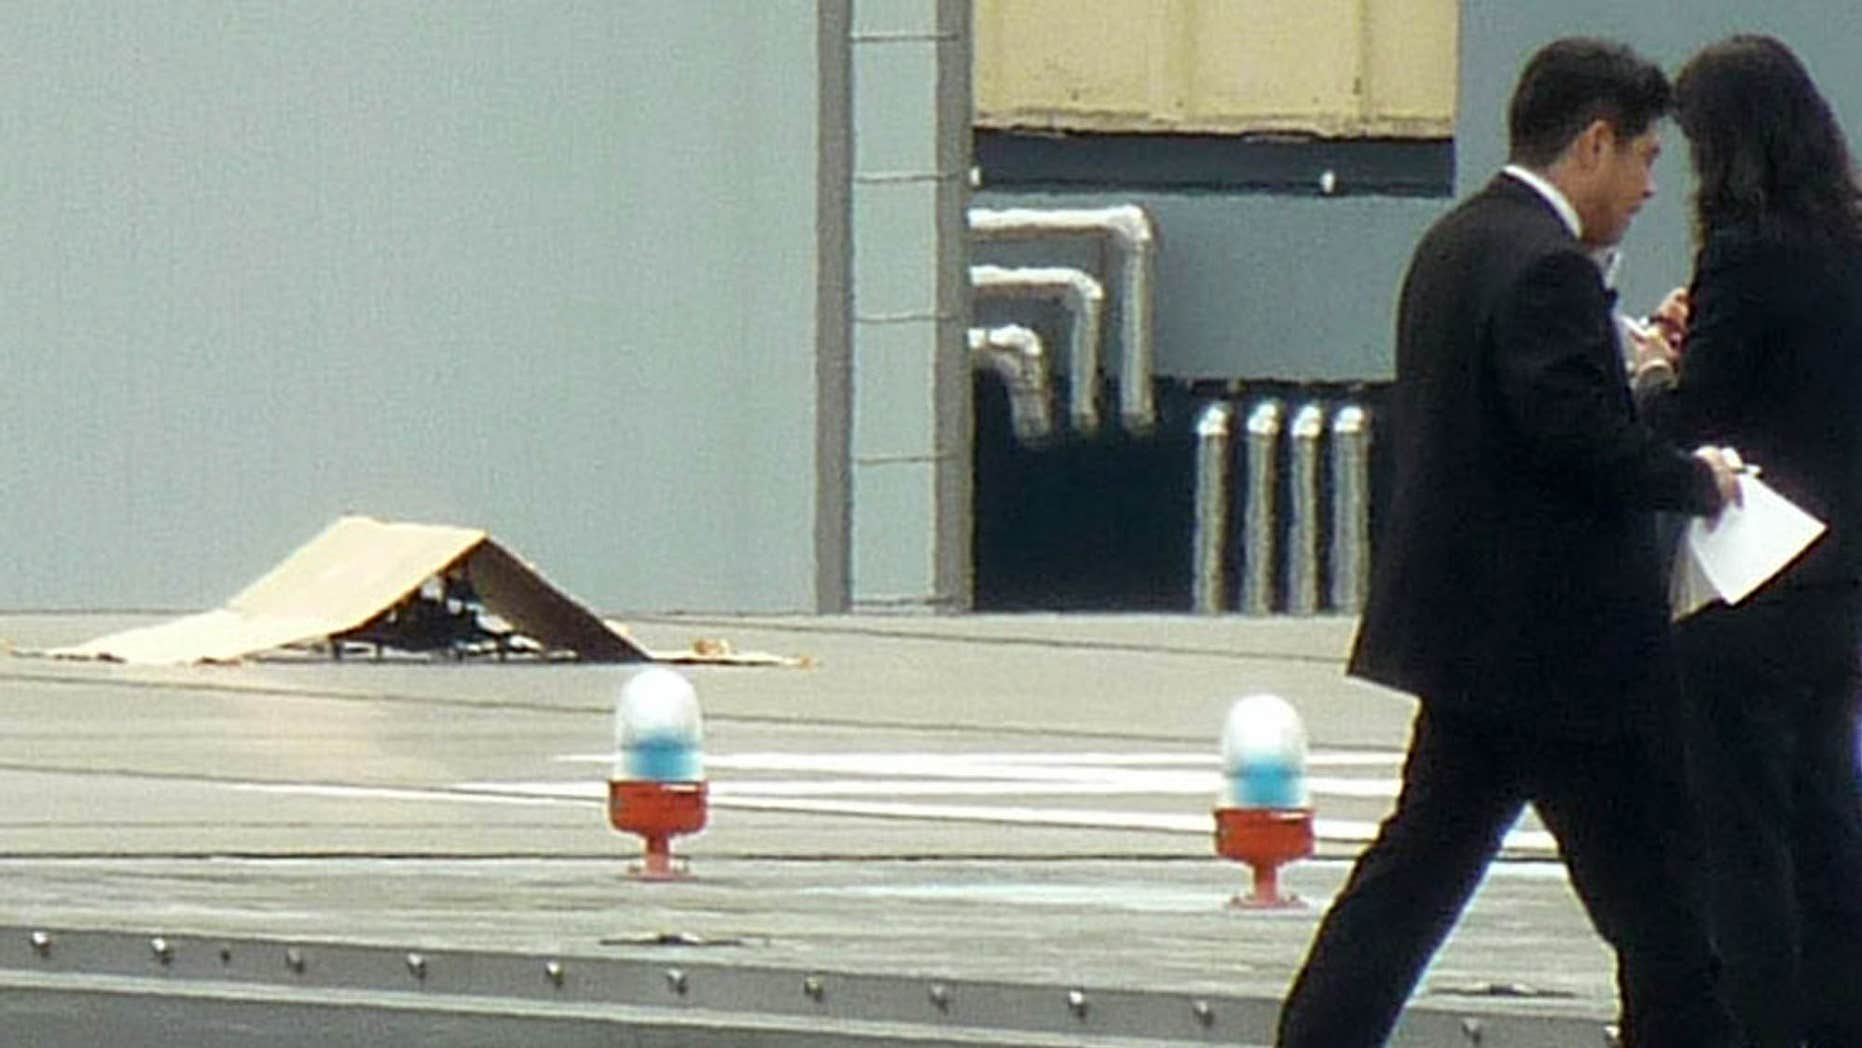 April 22, 2015: A small drone covered with cardboard, is seen on the roof of Prime Minister Shinzo Abe's official residence in Tokyo.